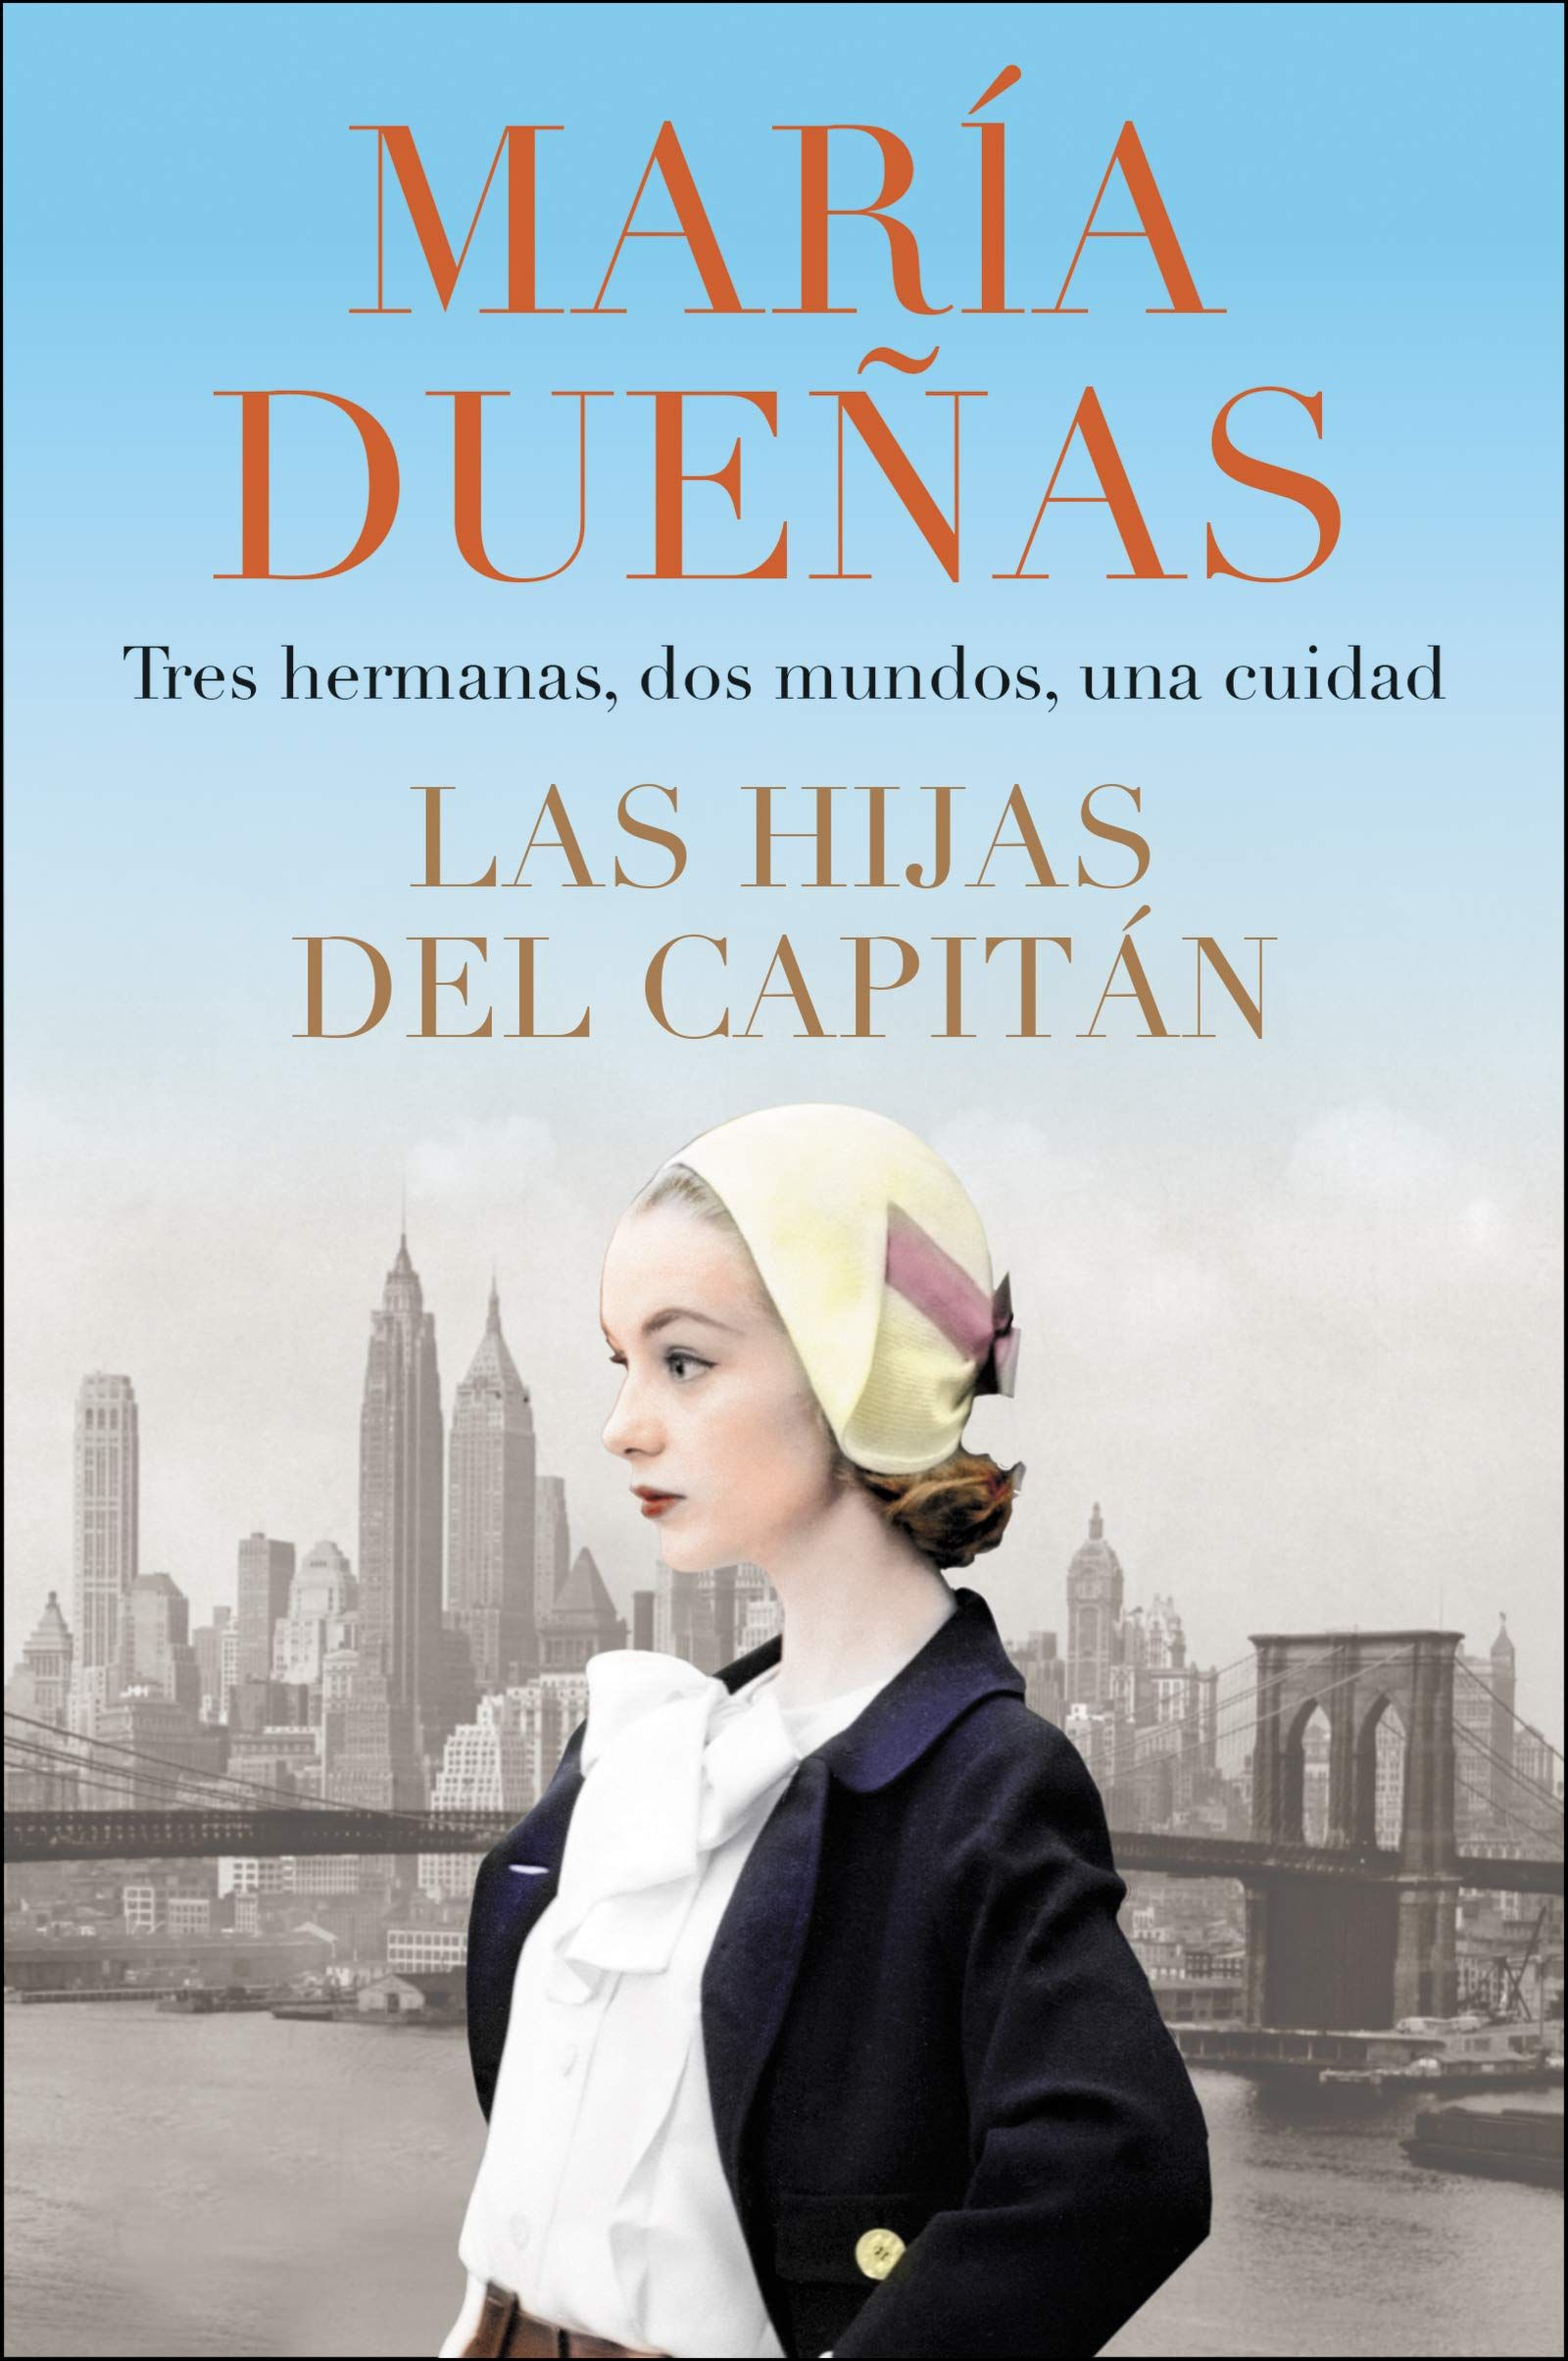 The Captain S Daughters Las Hijas Del Capitan Spanish Edition En 2020 Libros De Leer Libros Gratis Epub Como Descargar Libros Gratis